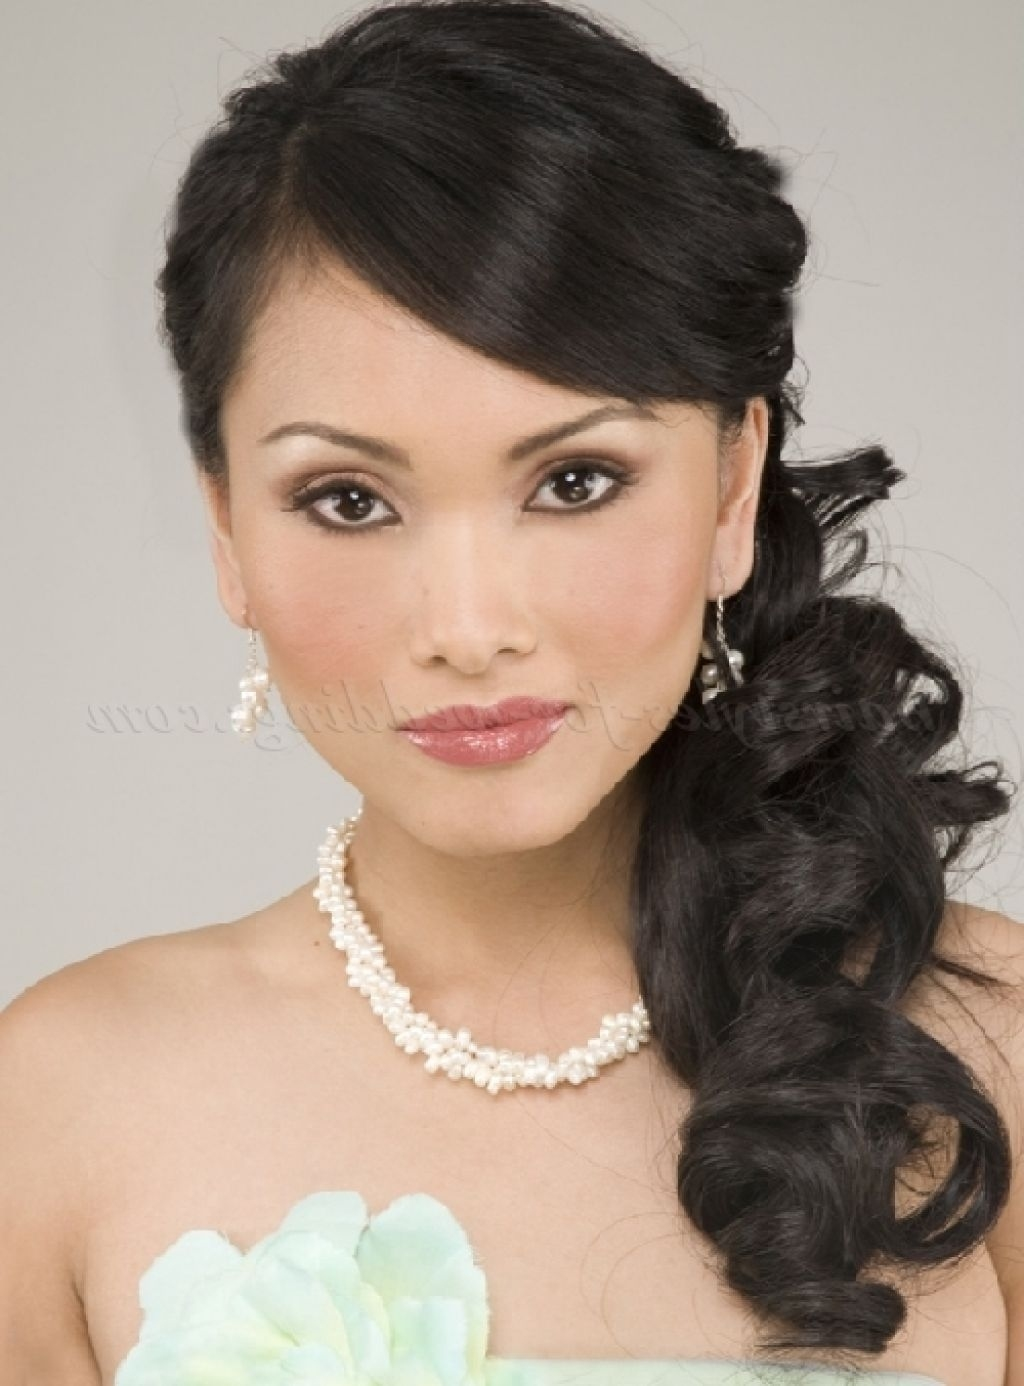 Hairstyles Side Ponytail Hairstyles For Wedding Asian Style With with Superb Asian Bridal Hairstyles For Long Hair